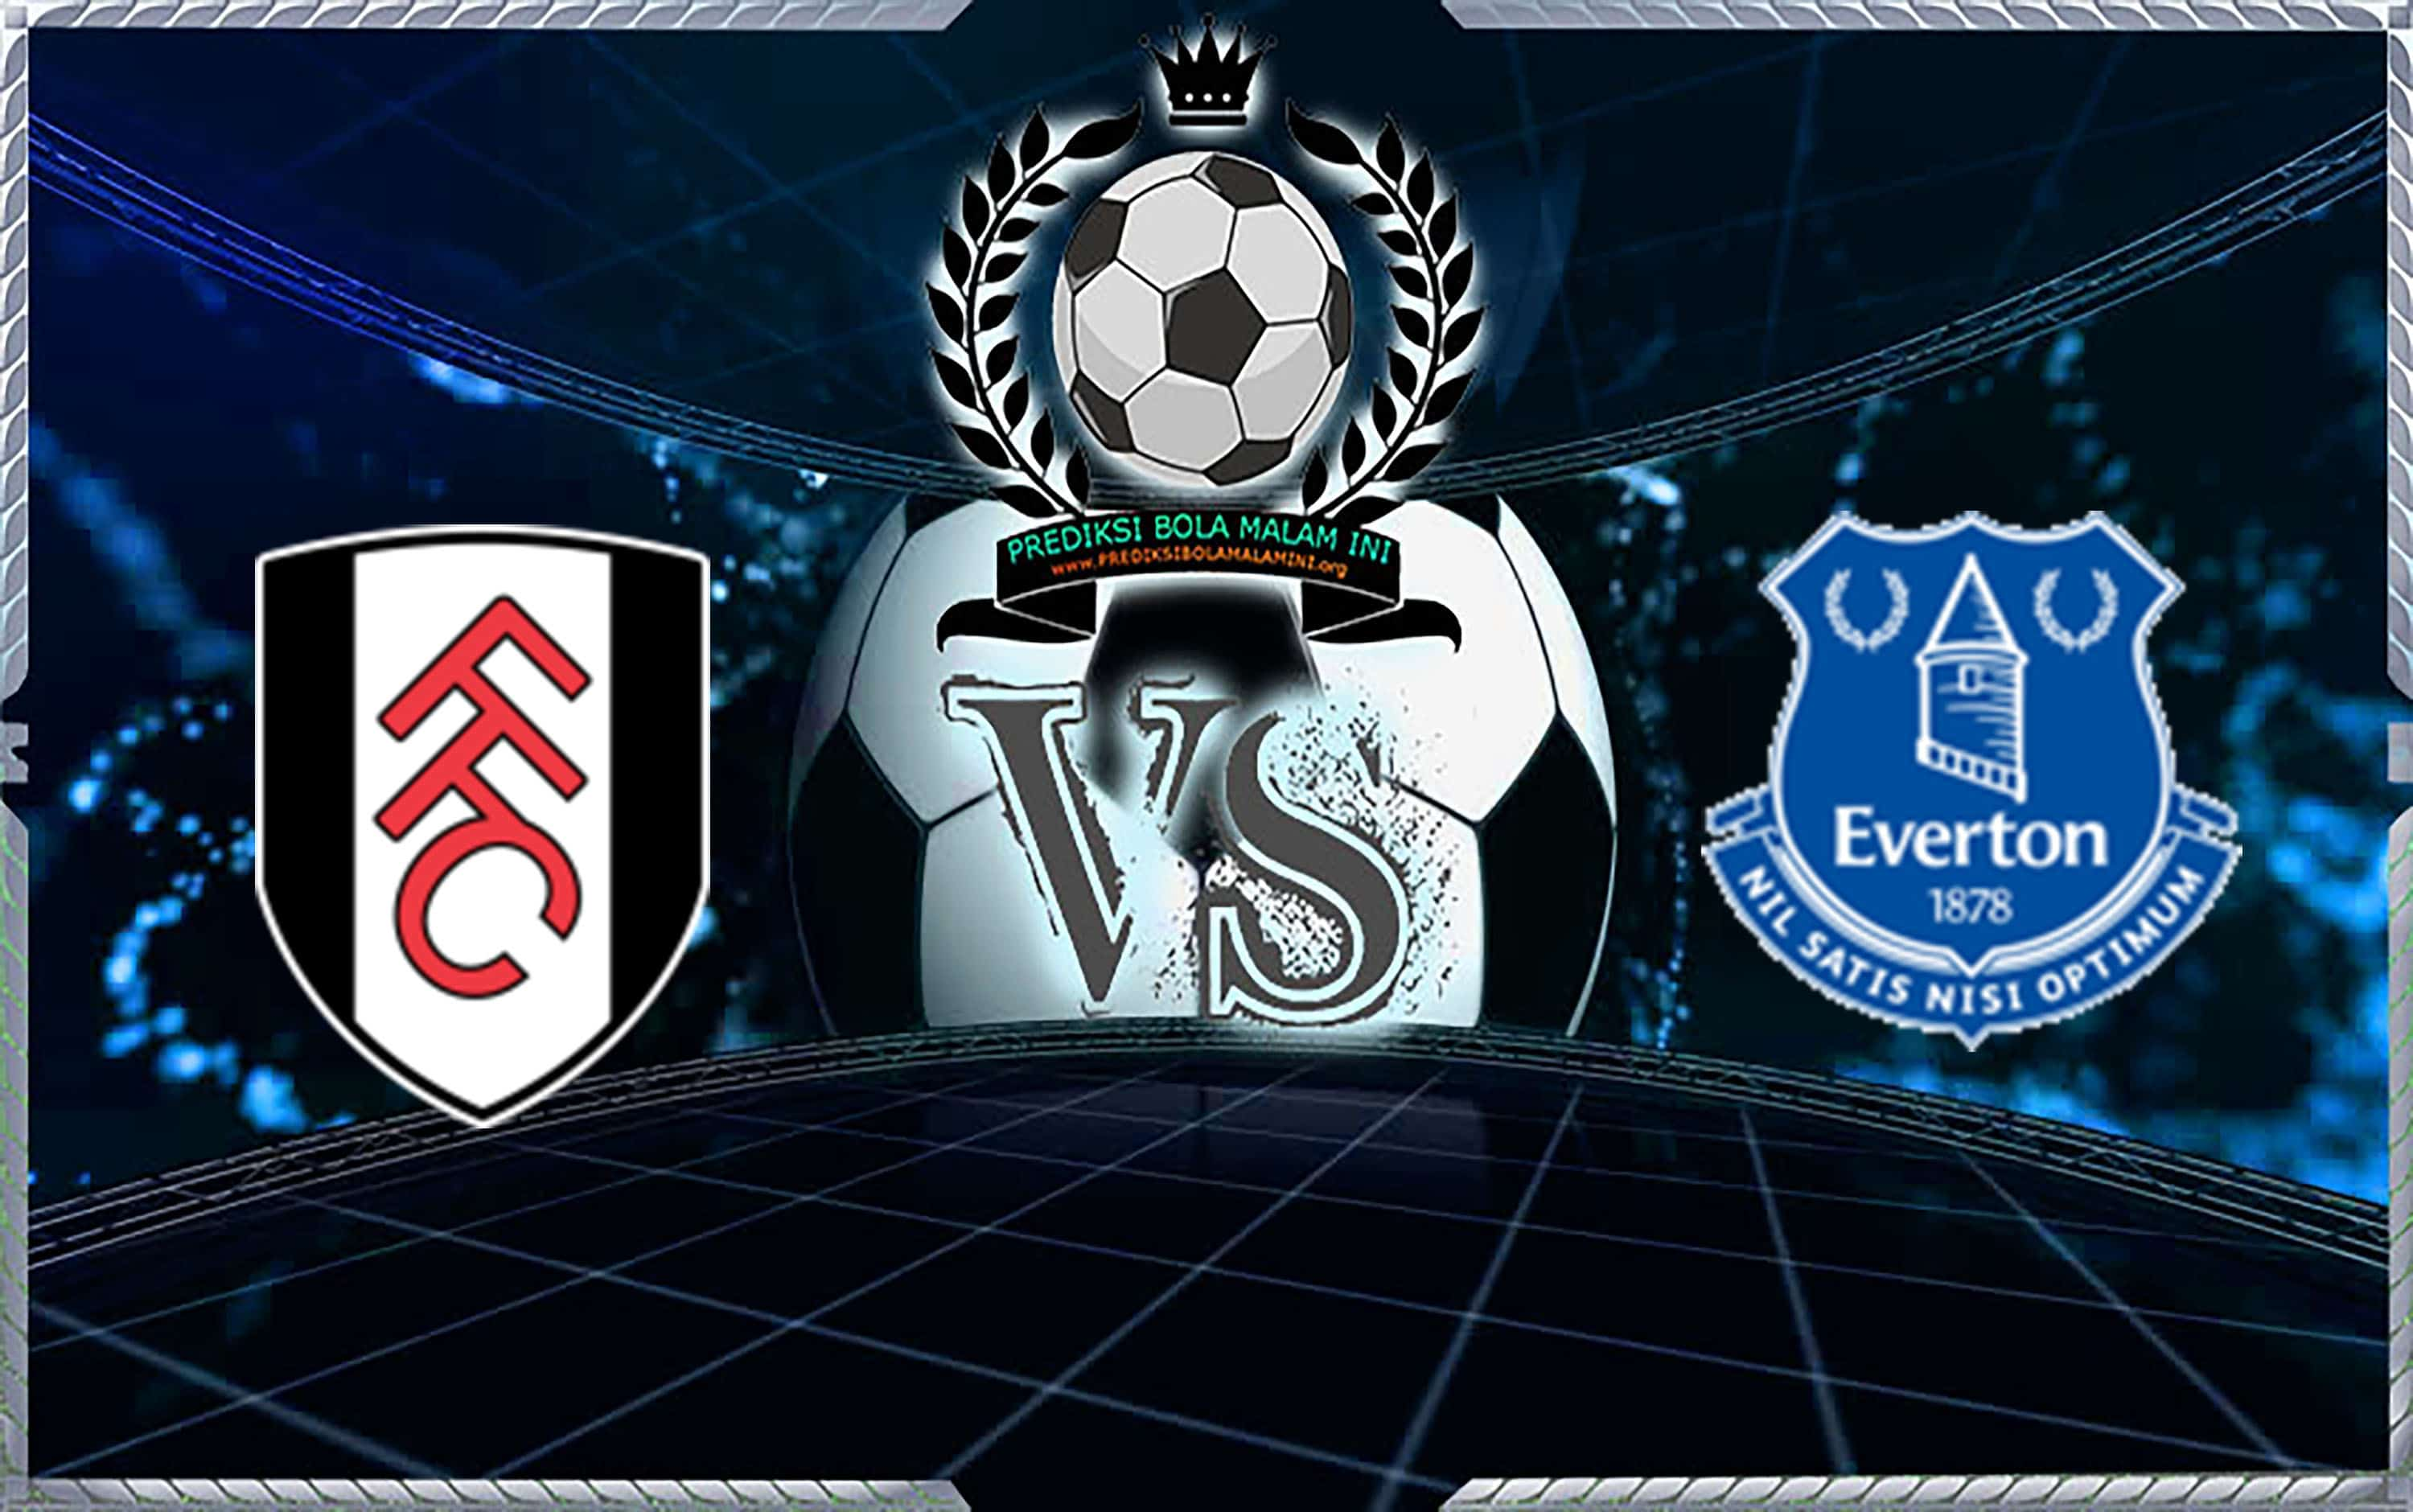 Prediksi Scor Fulham vs Everton 13 April 2019